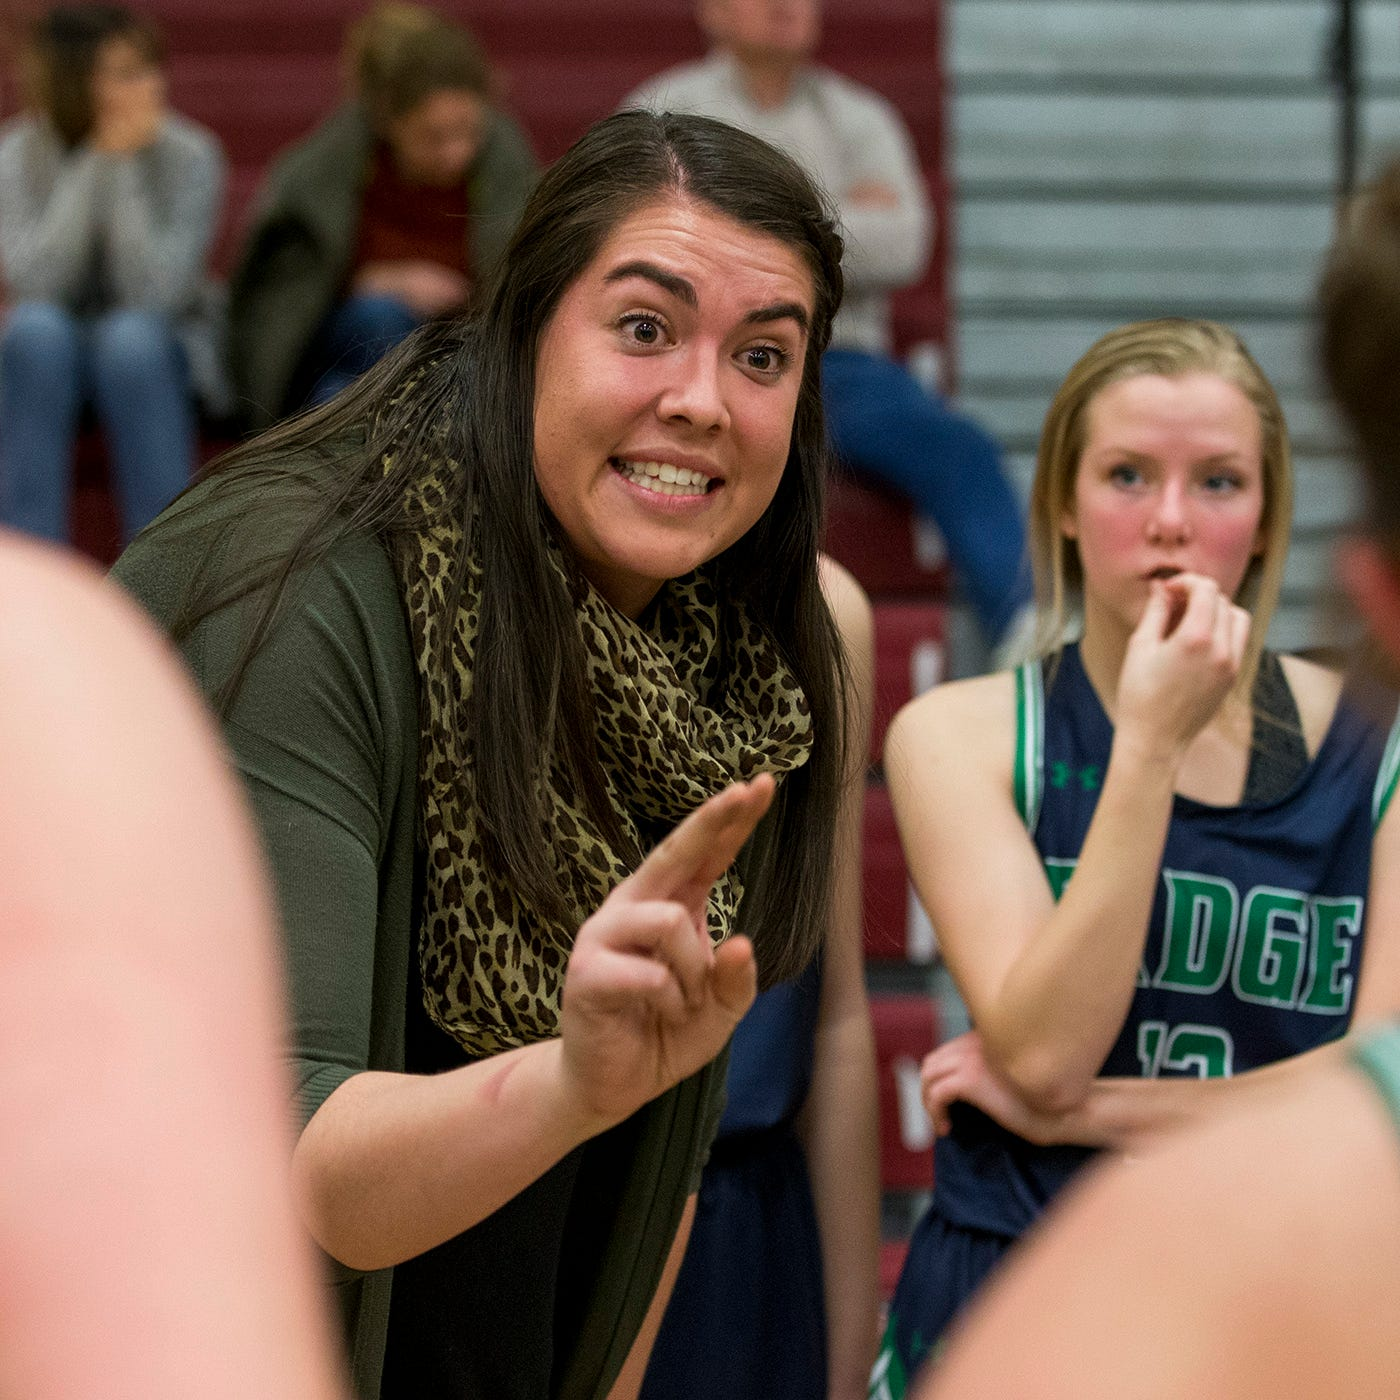 Former CSU basketball star providing role model for female athletes as a high school coach